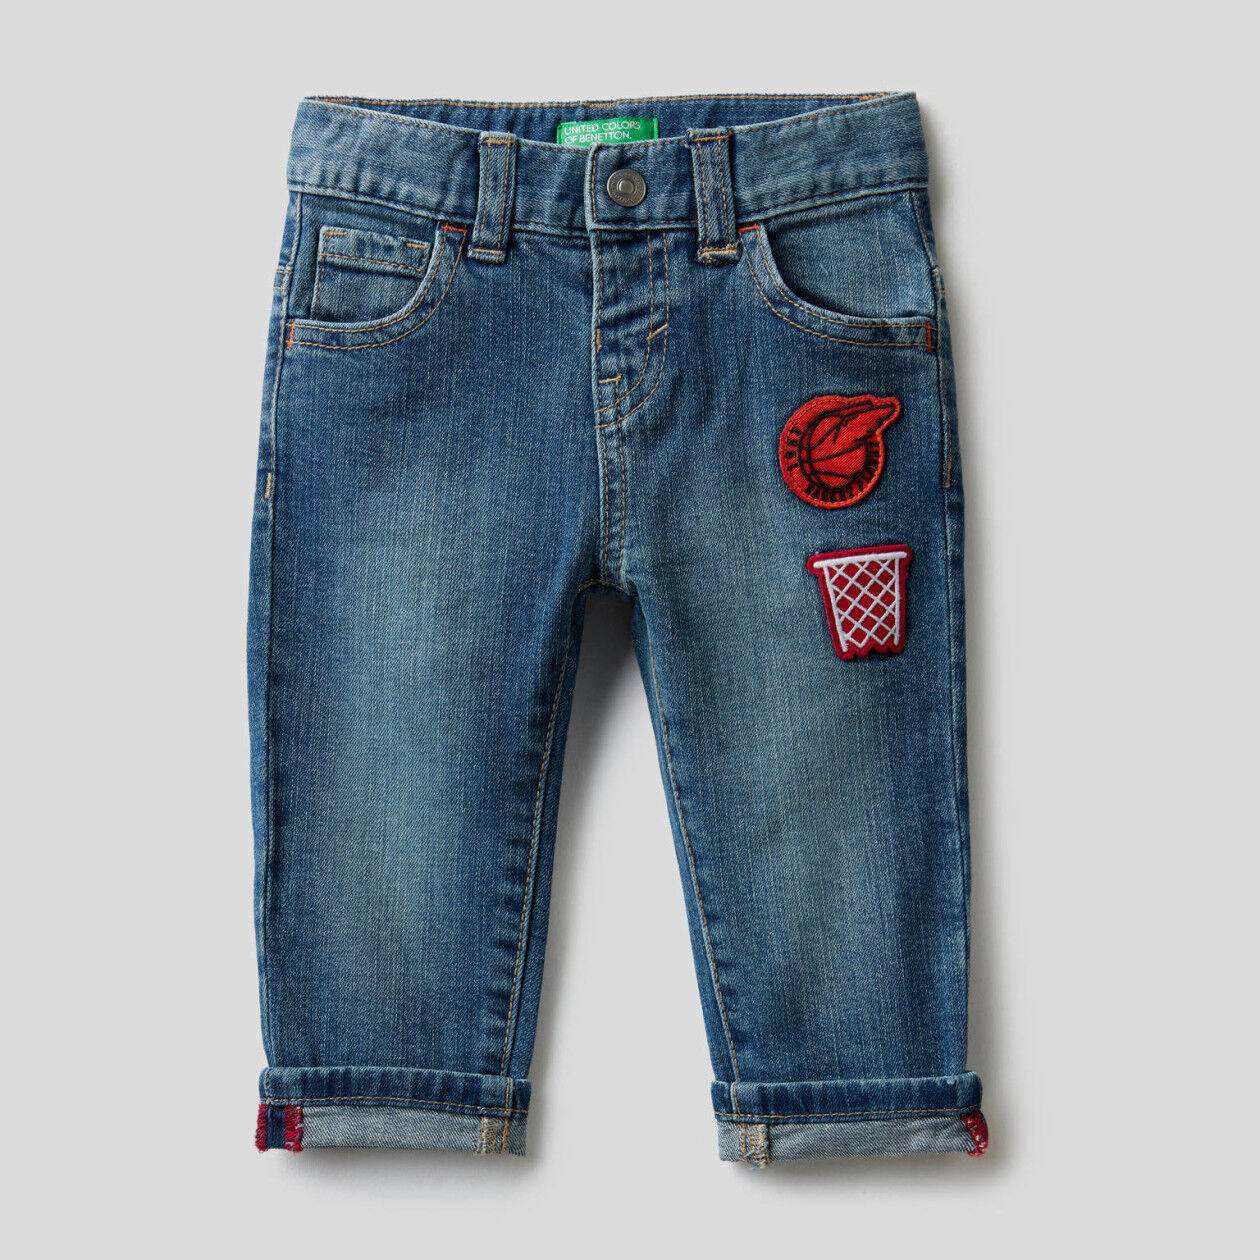 Five pocket jeans with patches